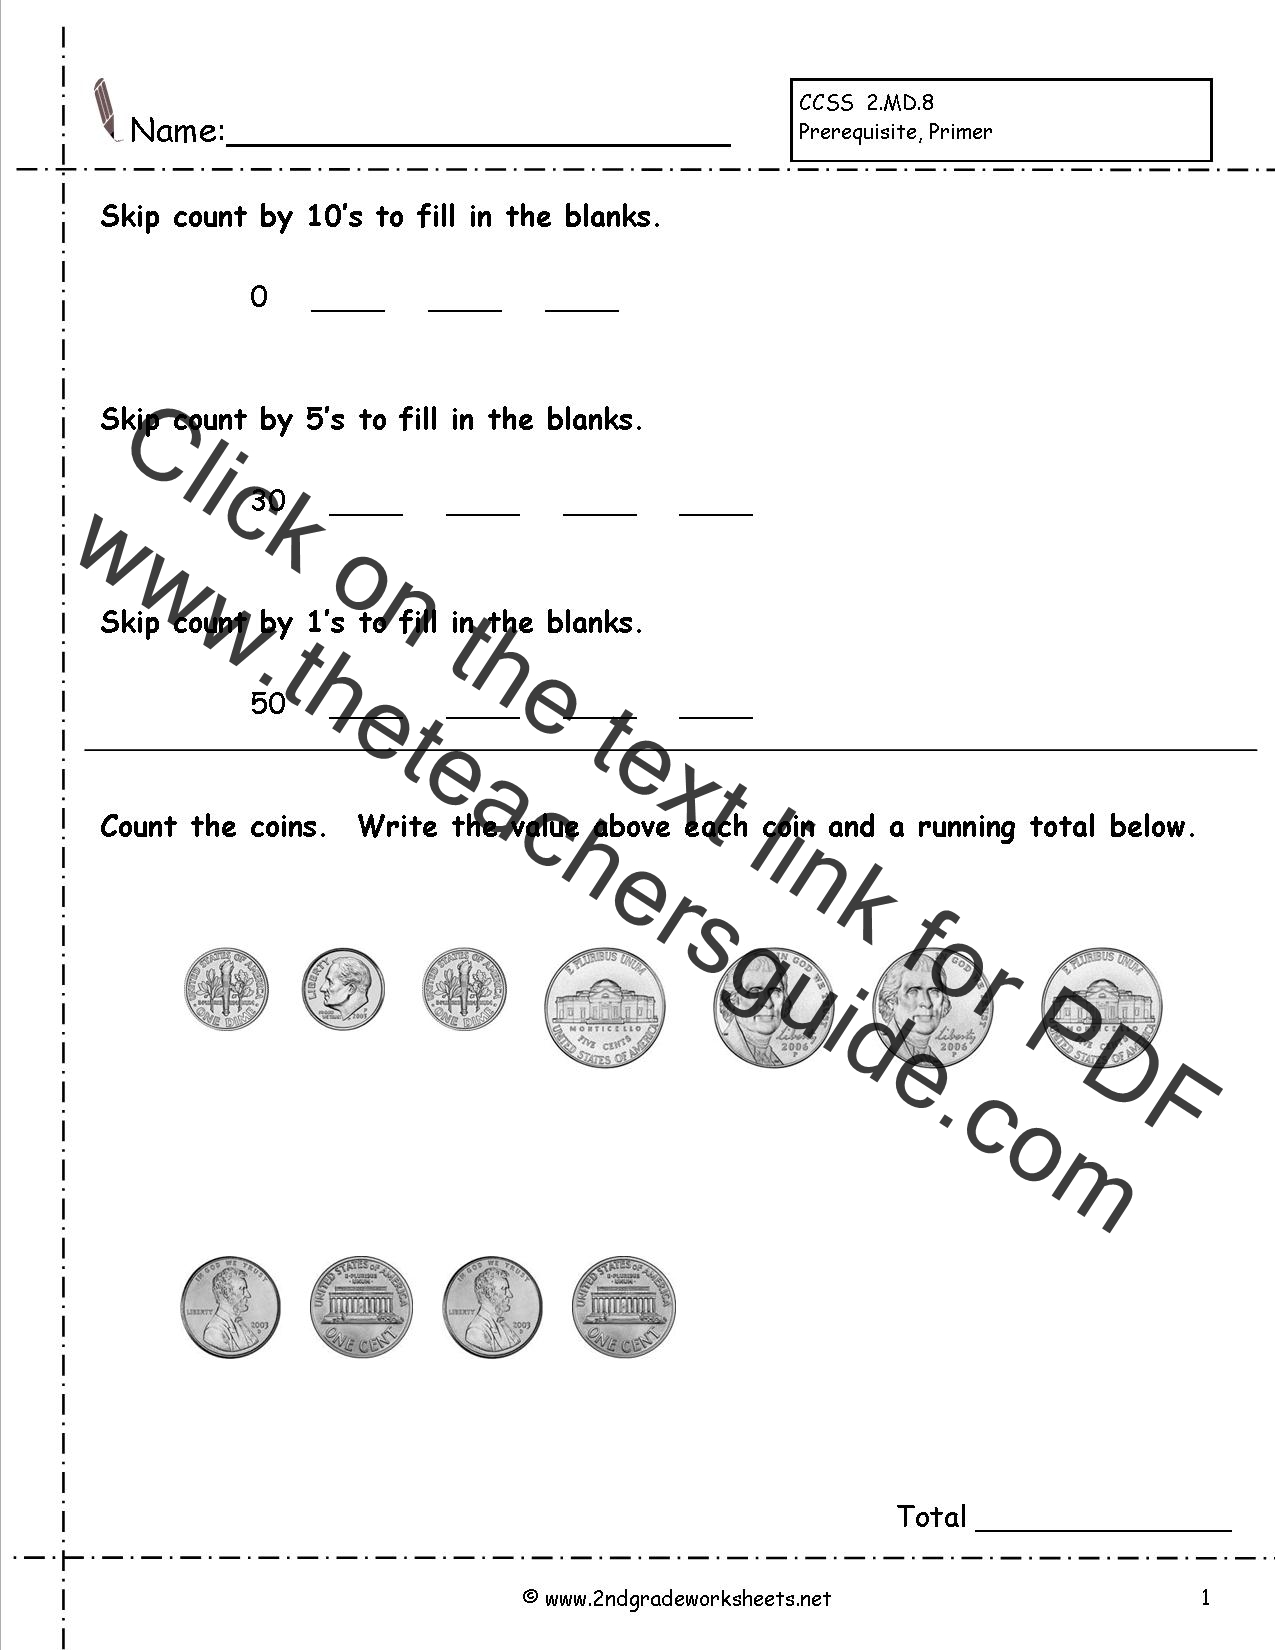 Counting Coins and Money Worksheets and Printouts – Value of Coins Worksheet